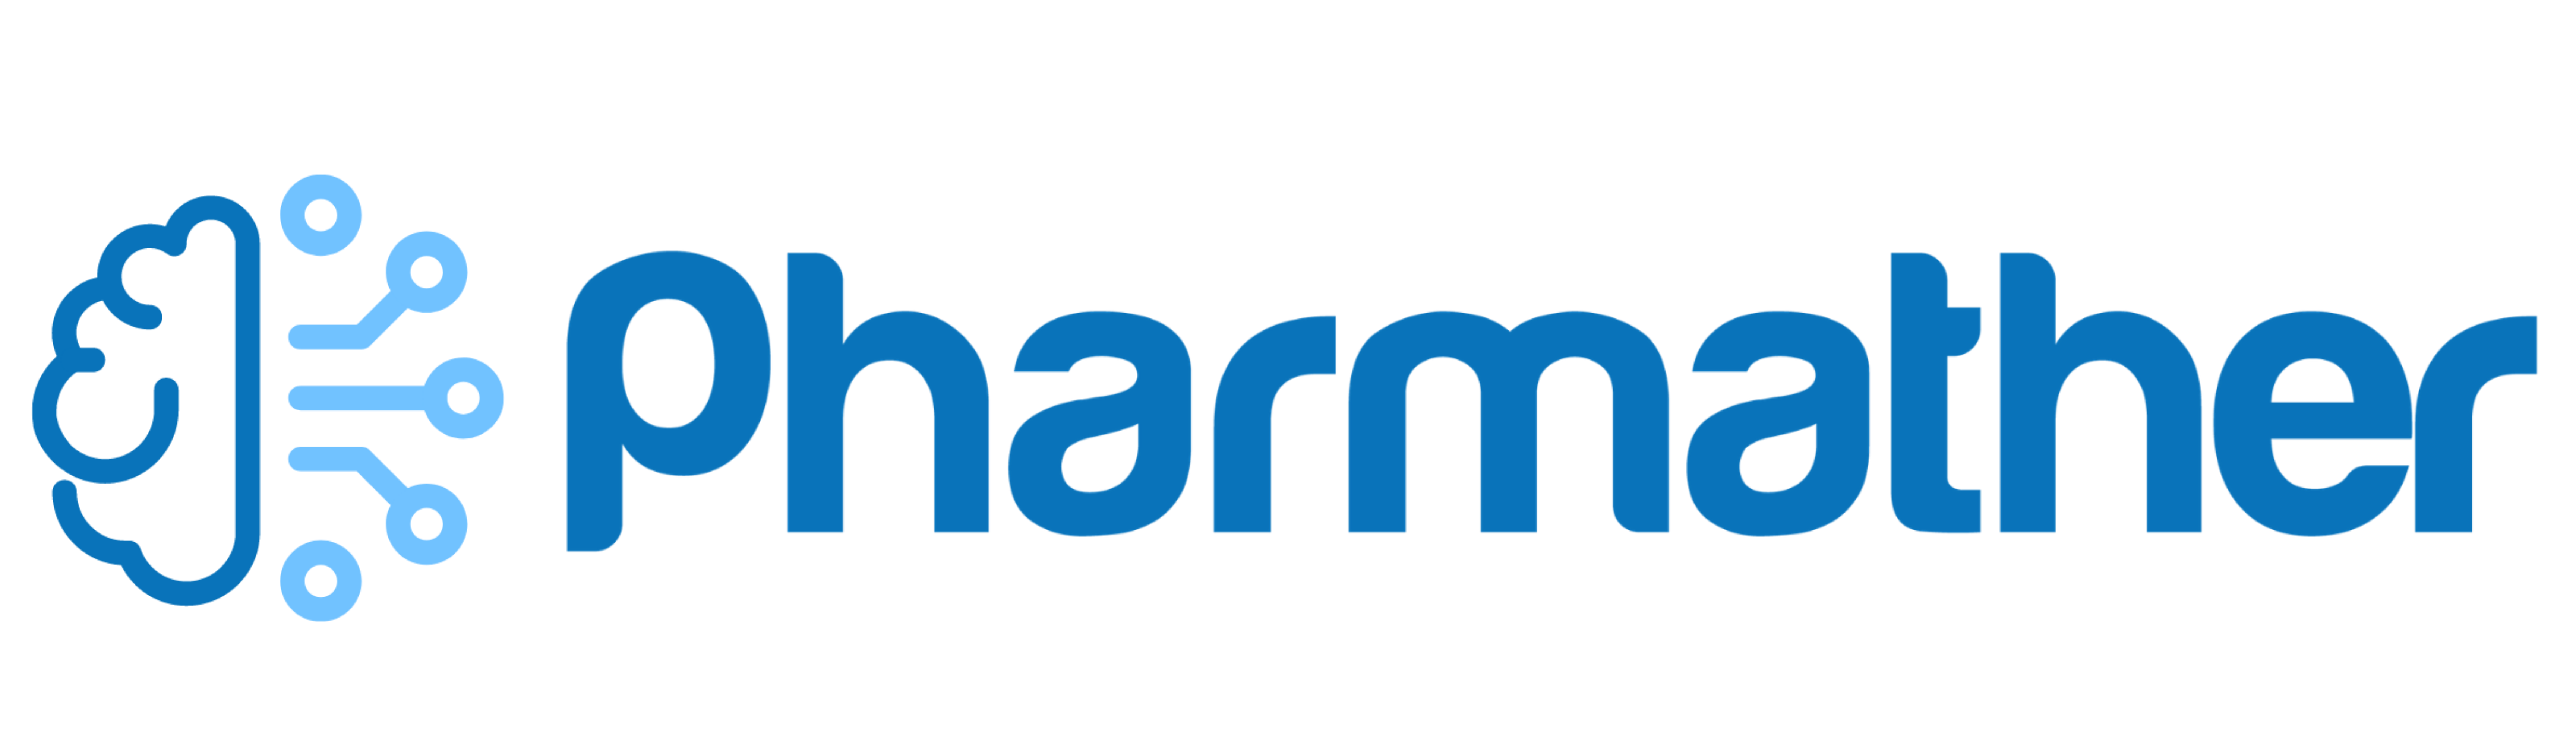 PharmaTher Announces Successful Completion of Pre-IND Meeting with FDA for the Clinical Development of Ketamine in the Treatment of Parkinson's Disease